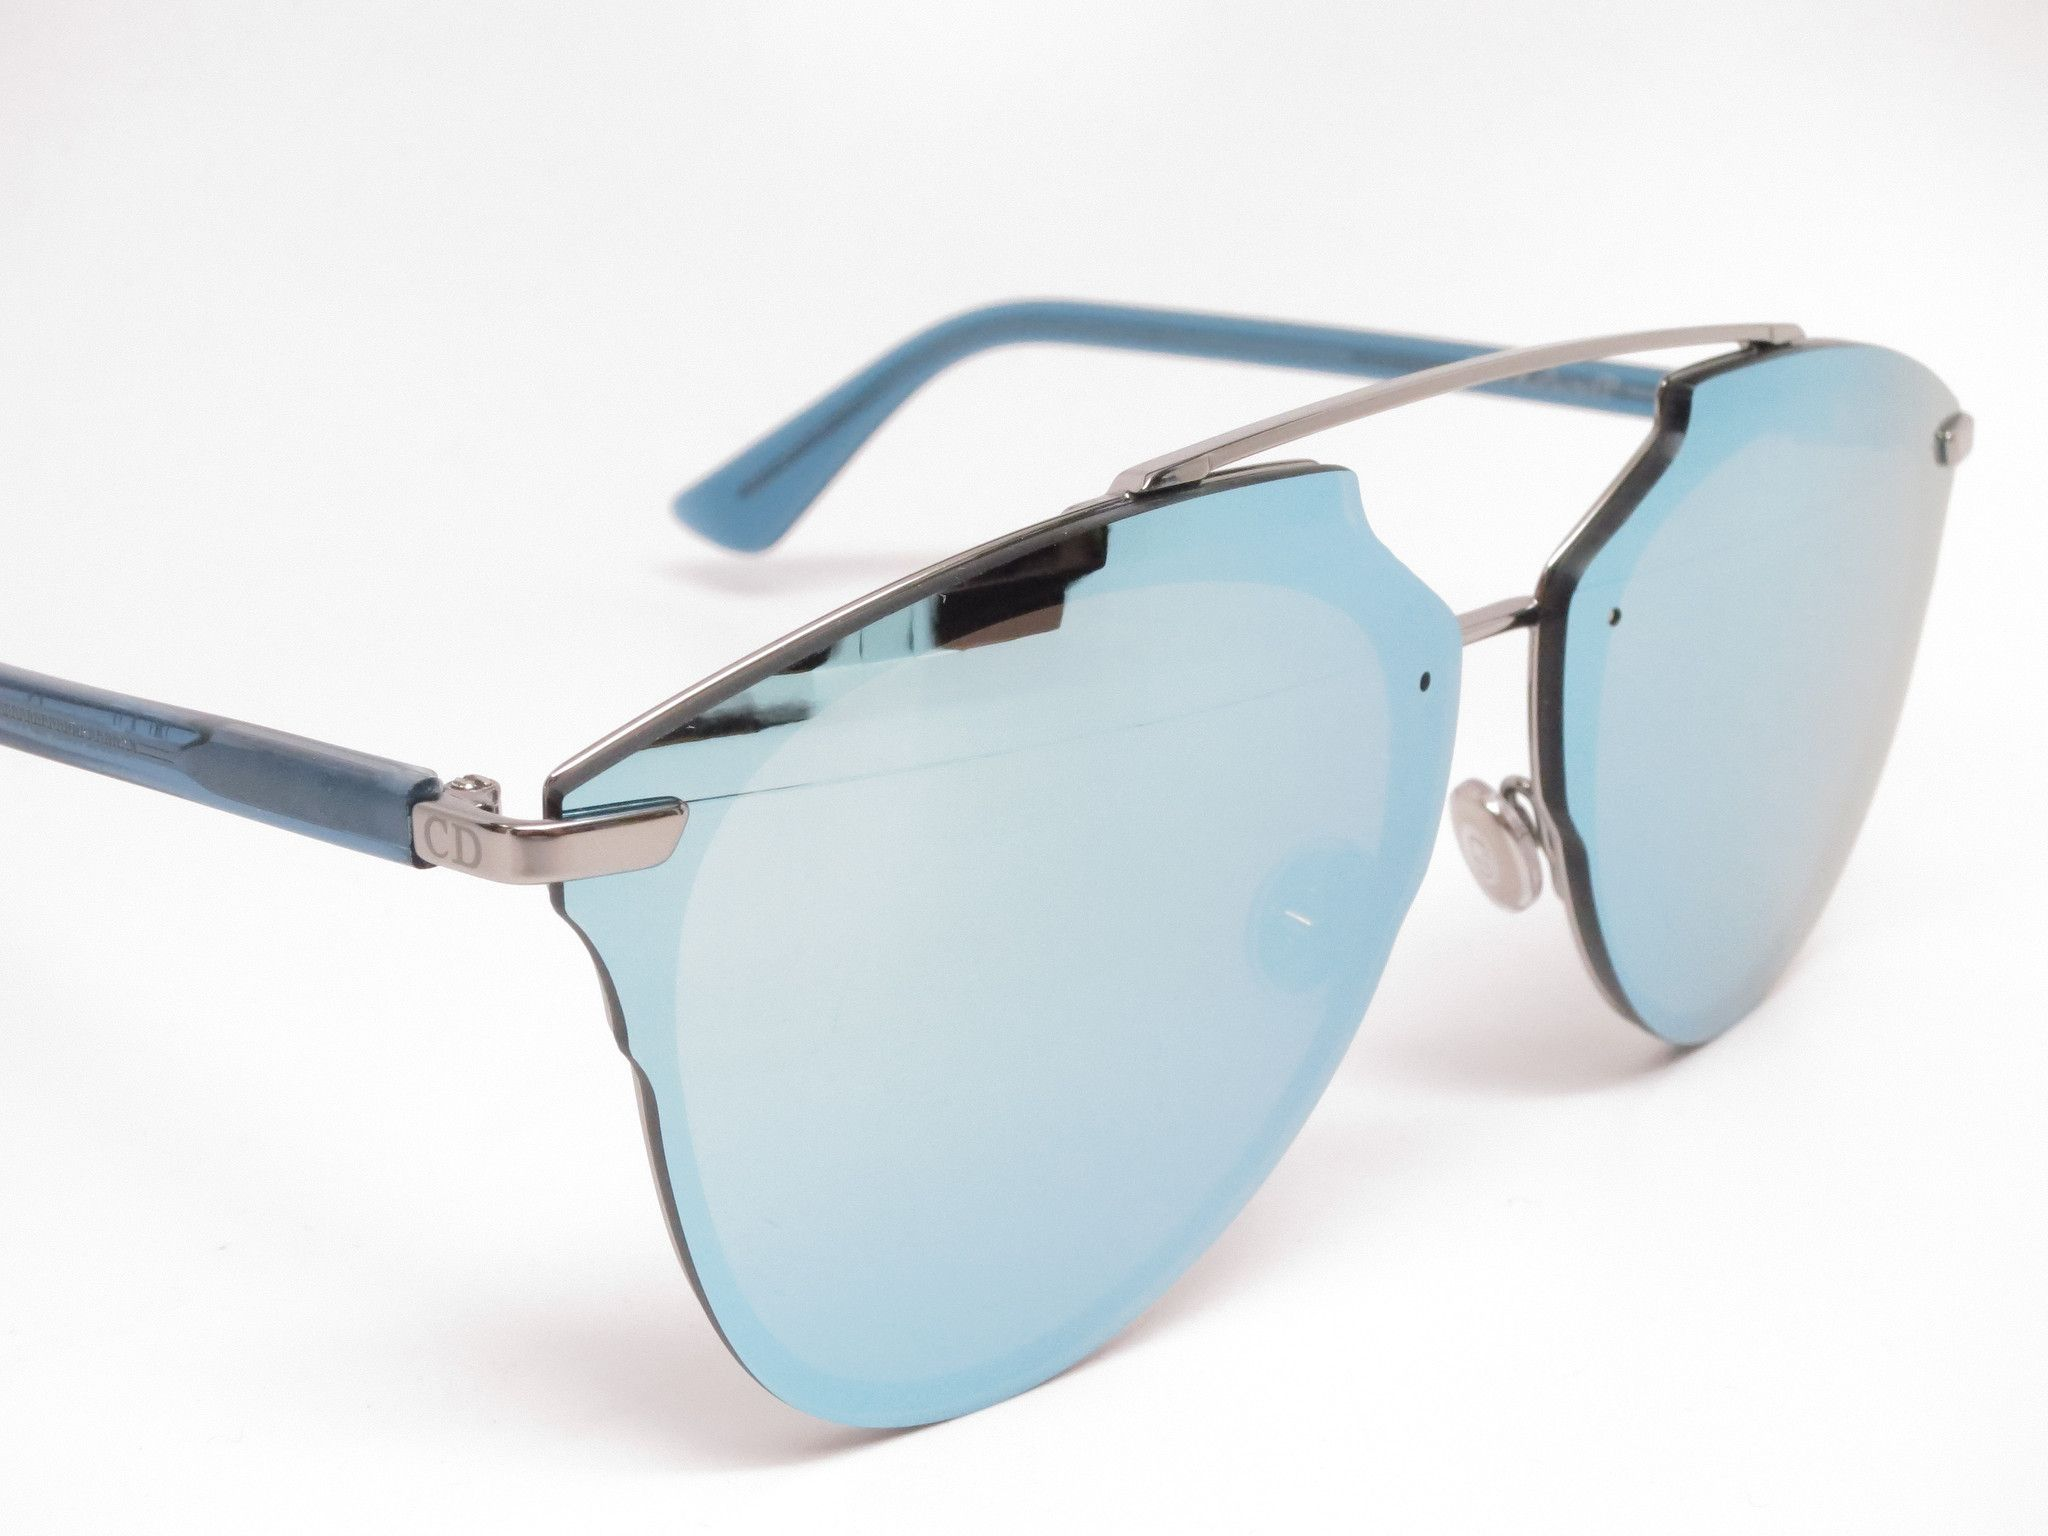 3f161cd3c7 Product Details of Dior Reflected P Sunglasses Brand   Christion Dior Model  Name   Reflected P